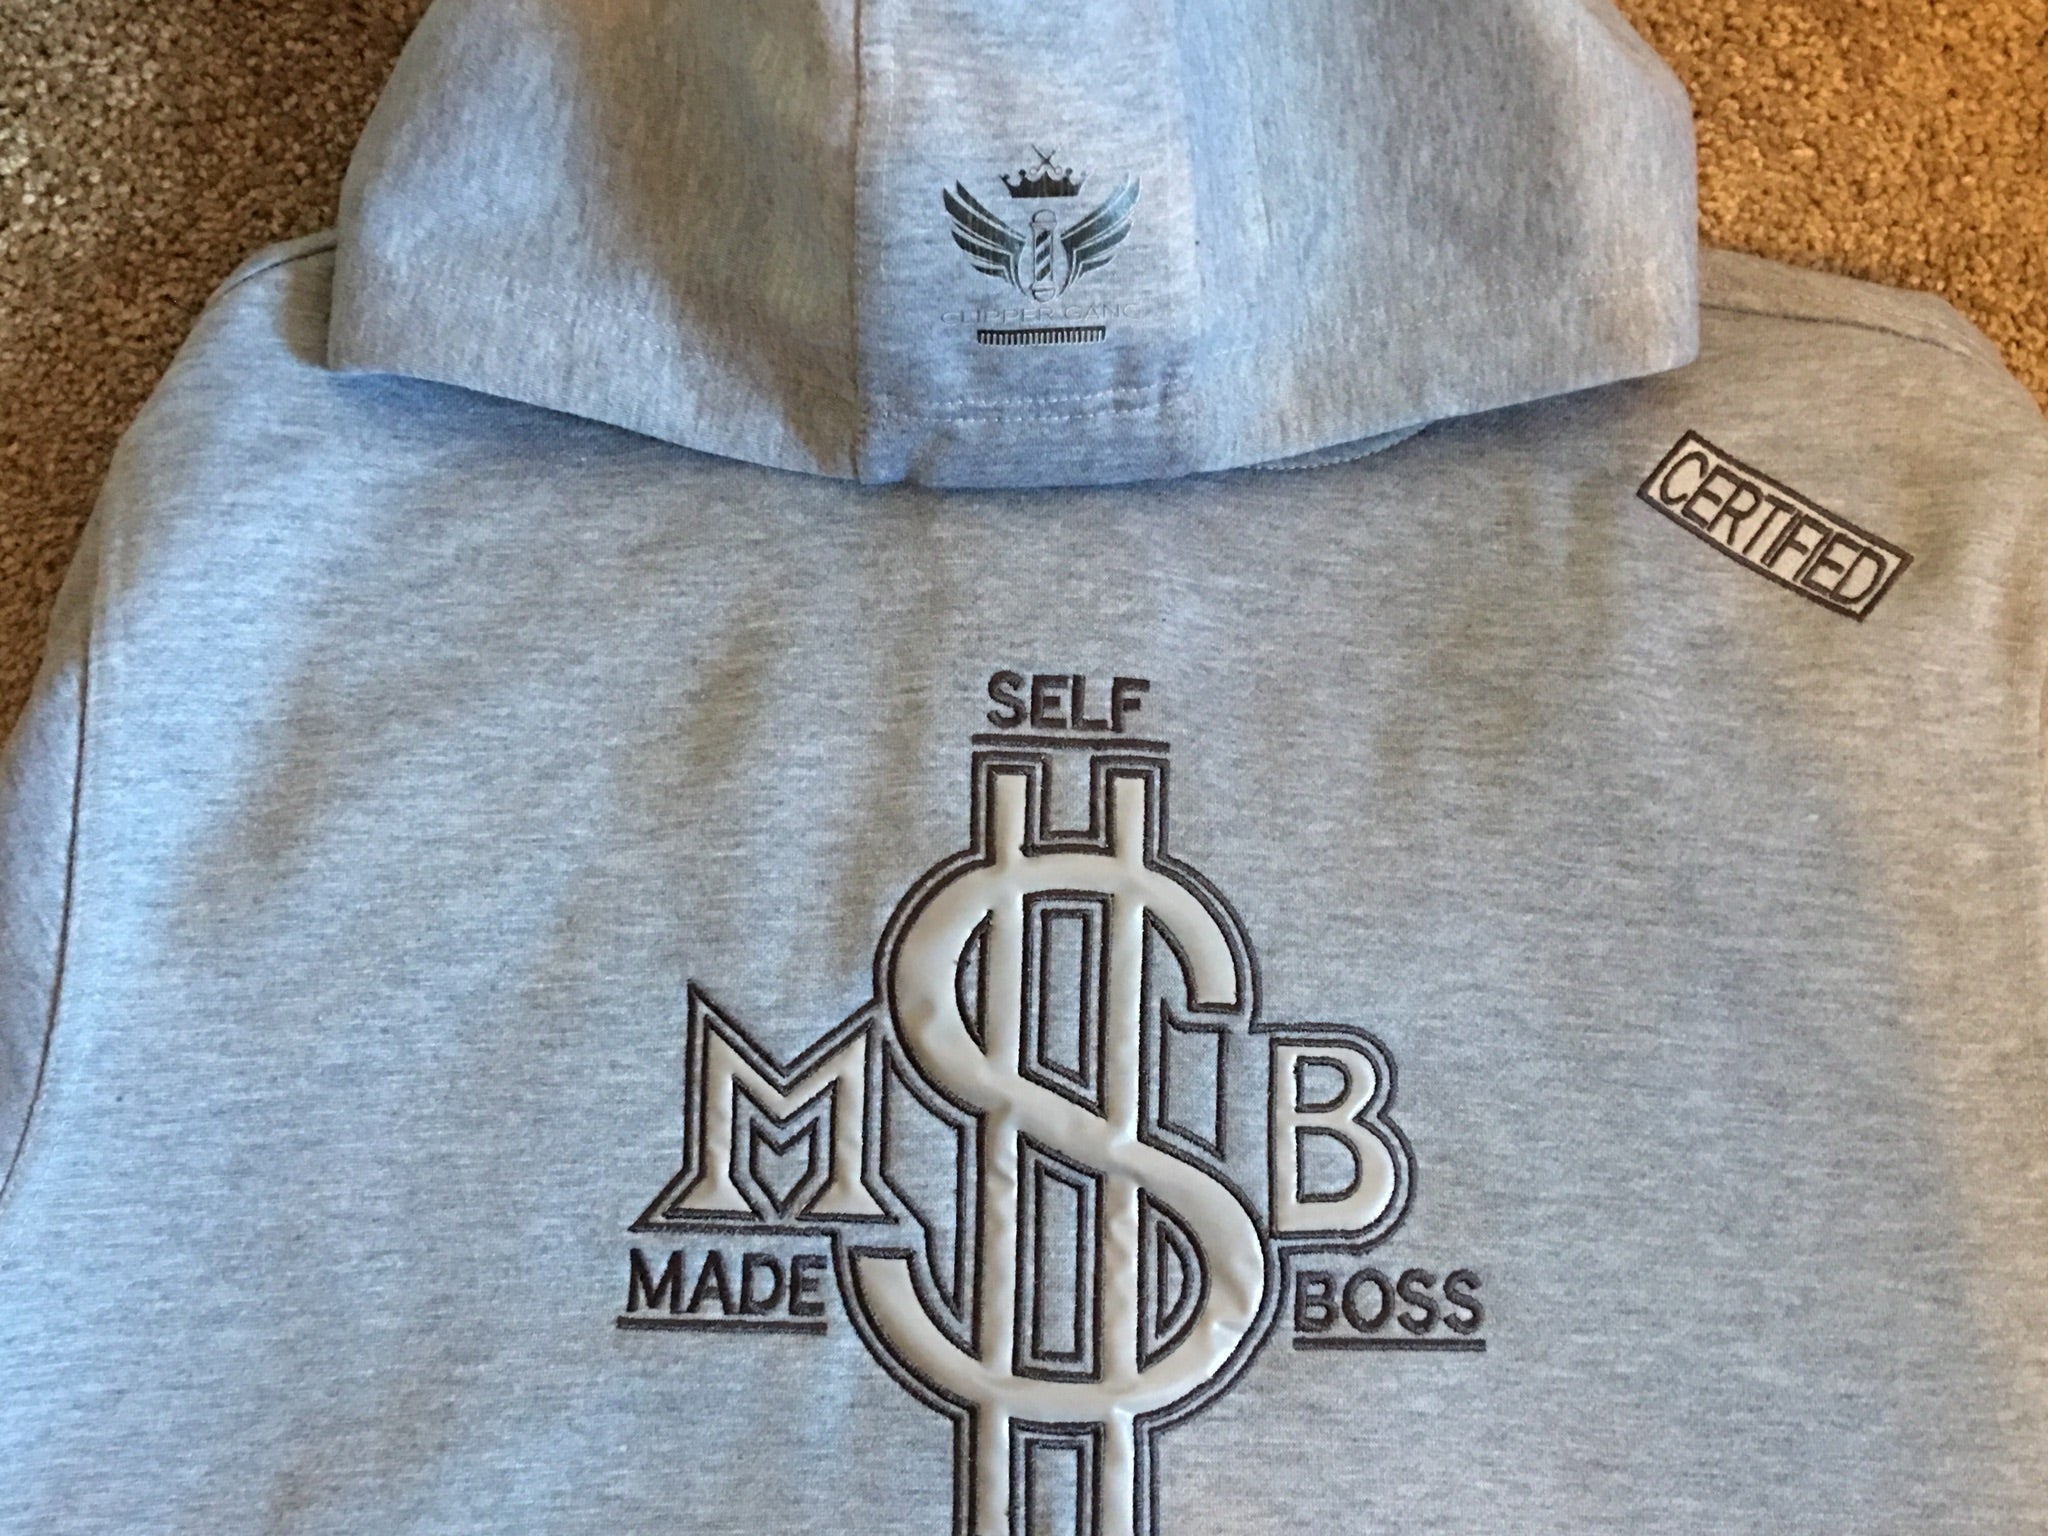 37827491f Self made boss hoodie – Clippergang apparel